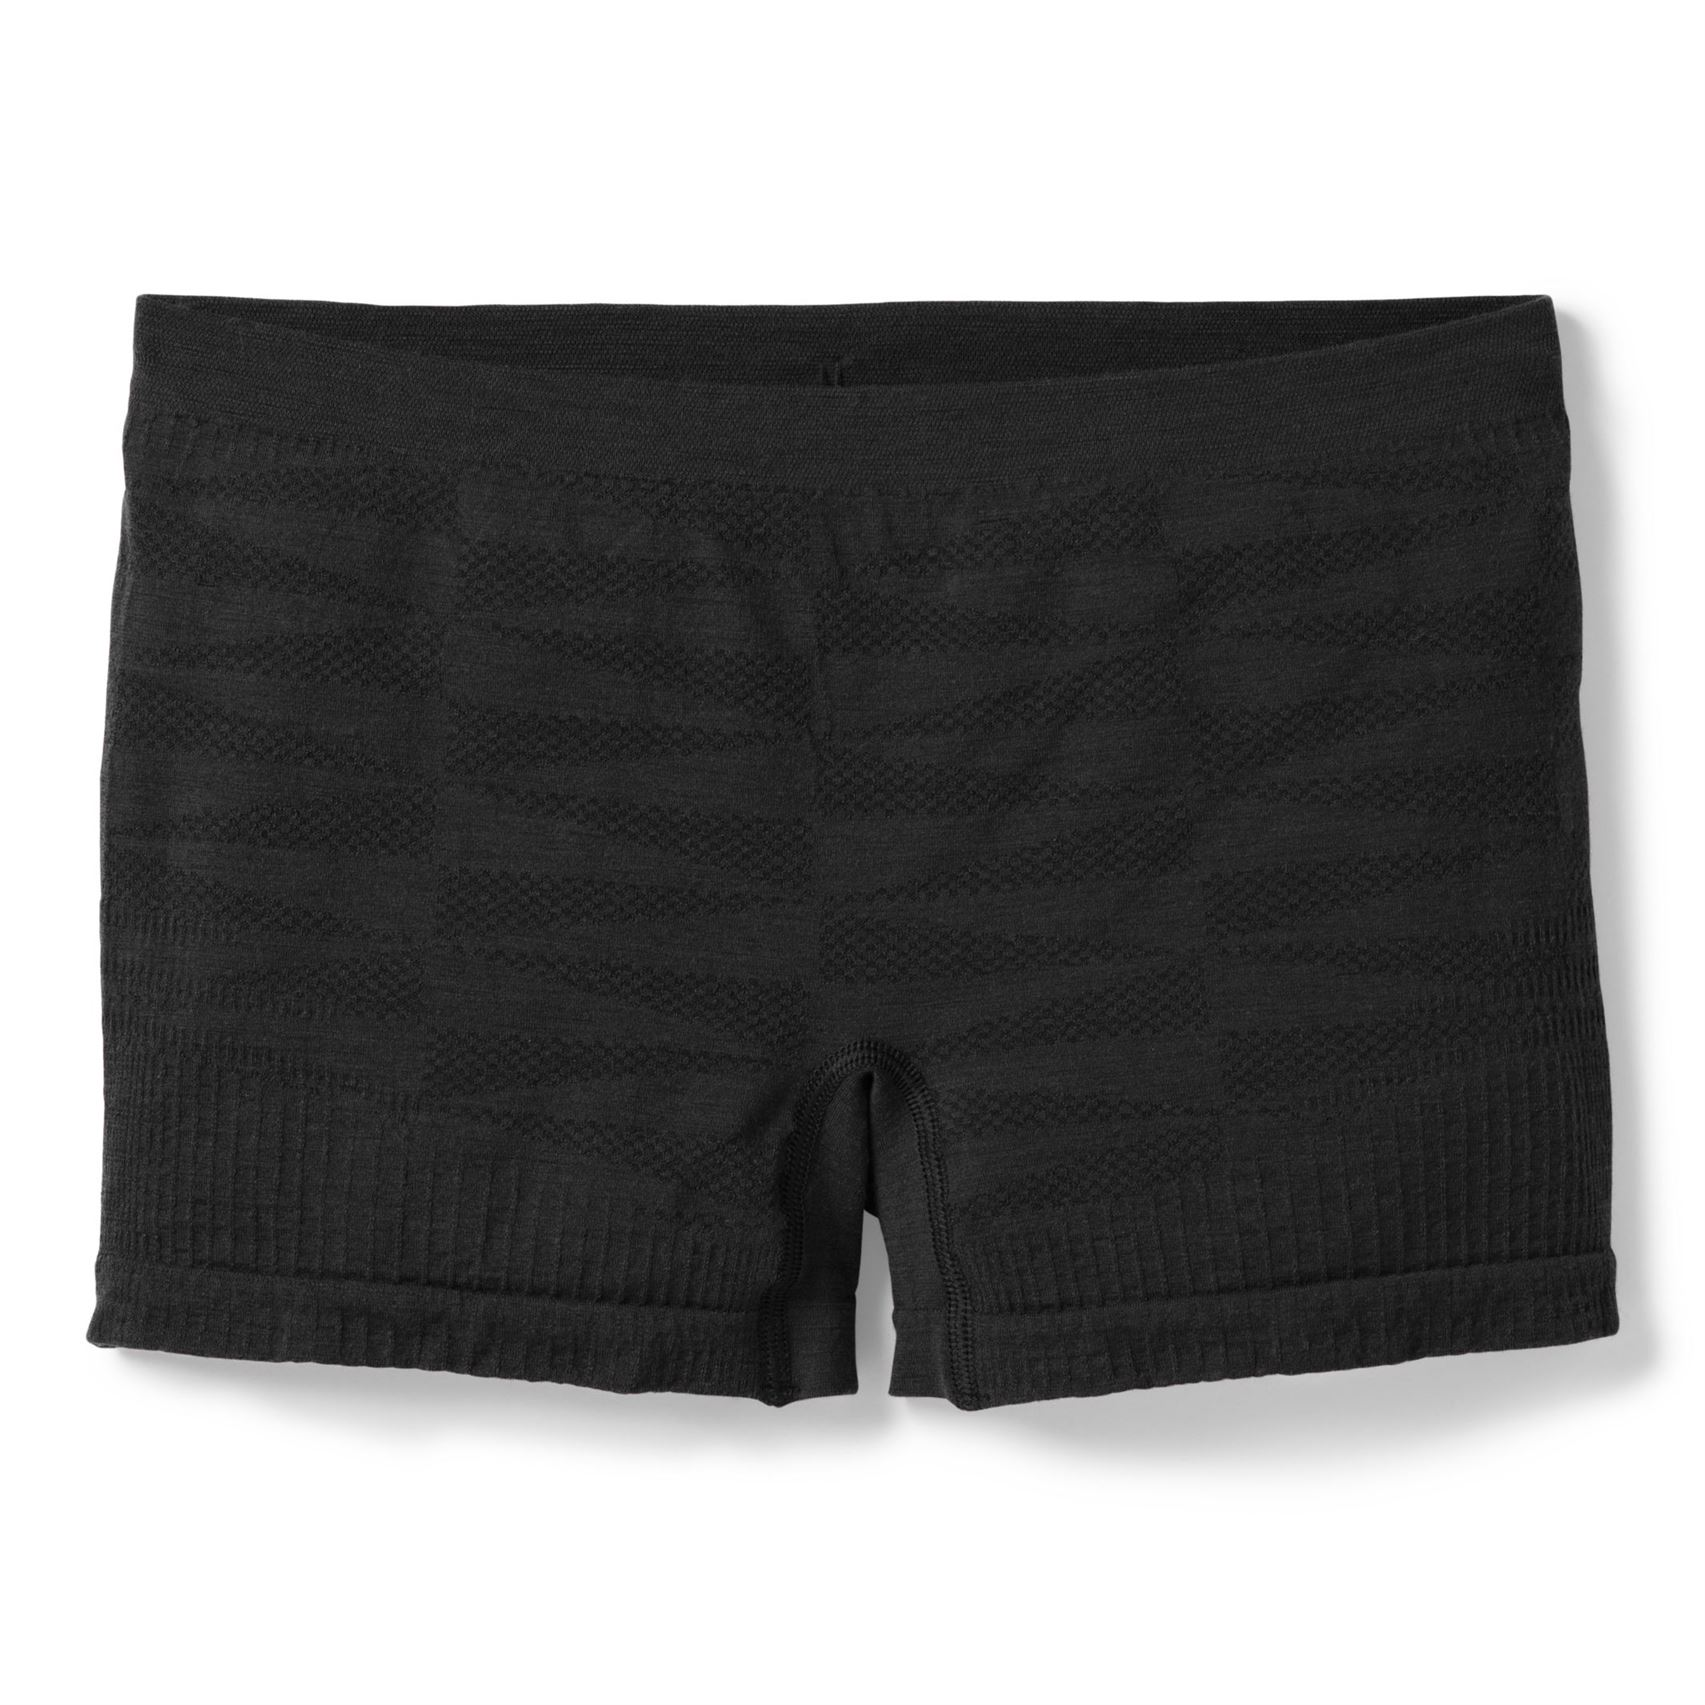 Merino Seamless Boy Short - Women's